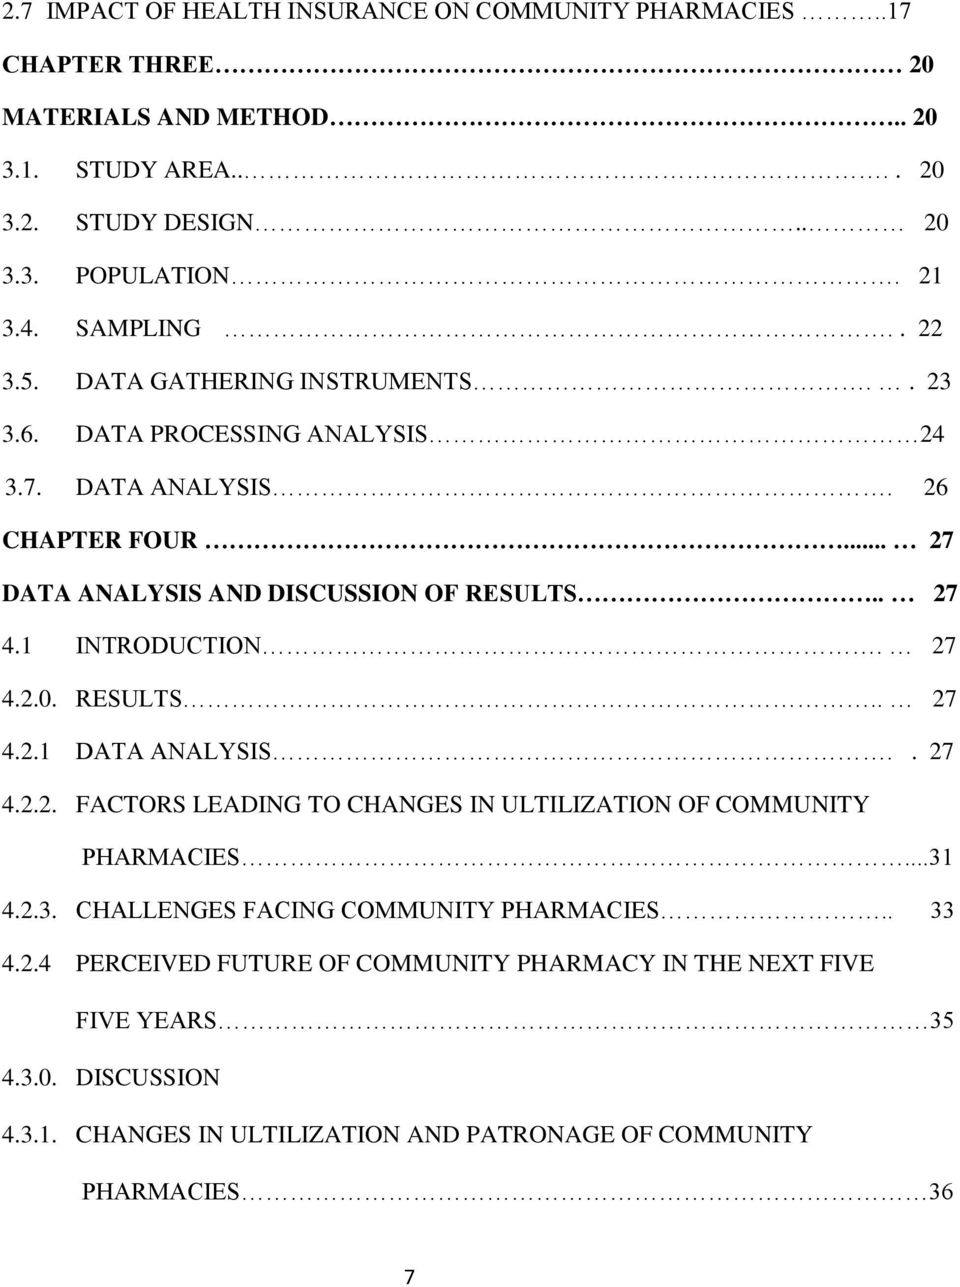 1 INTRODUCTION. 27 4.2.0. RESULTS.. 27 4.2.1 DATA ANALYSIS.. 27 4.2.2. FACTORS LEADING TO CHANGES IN ULTILIZATION OF COMMUNITY PHARMACIES...31